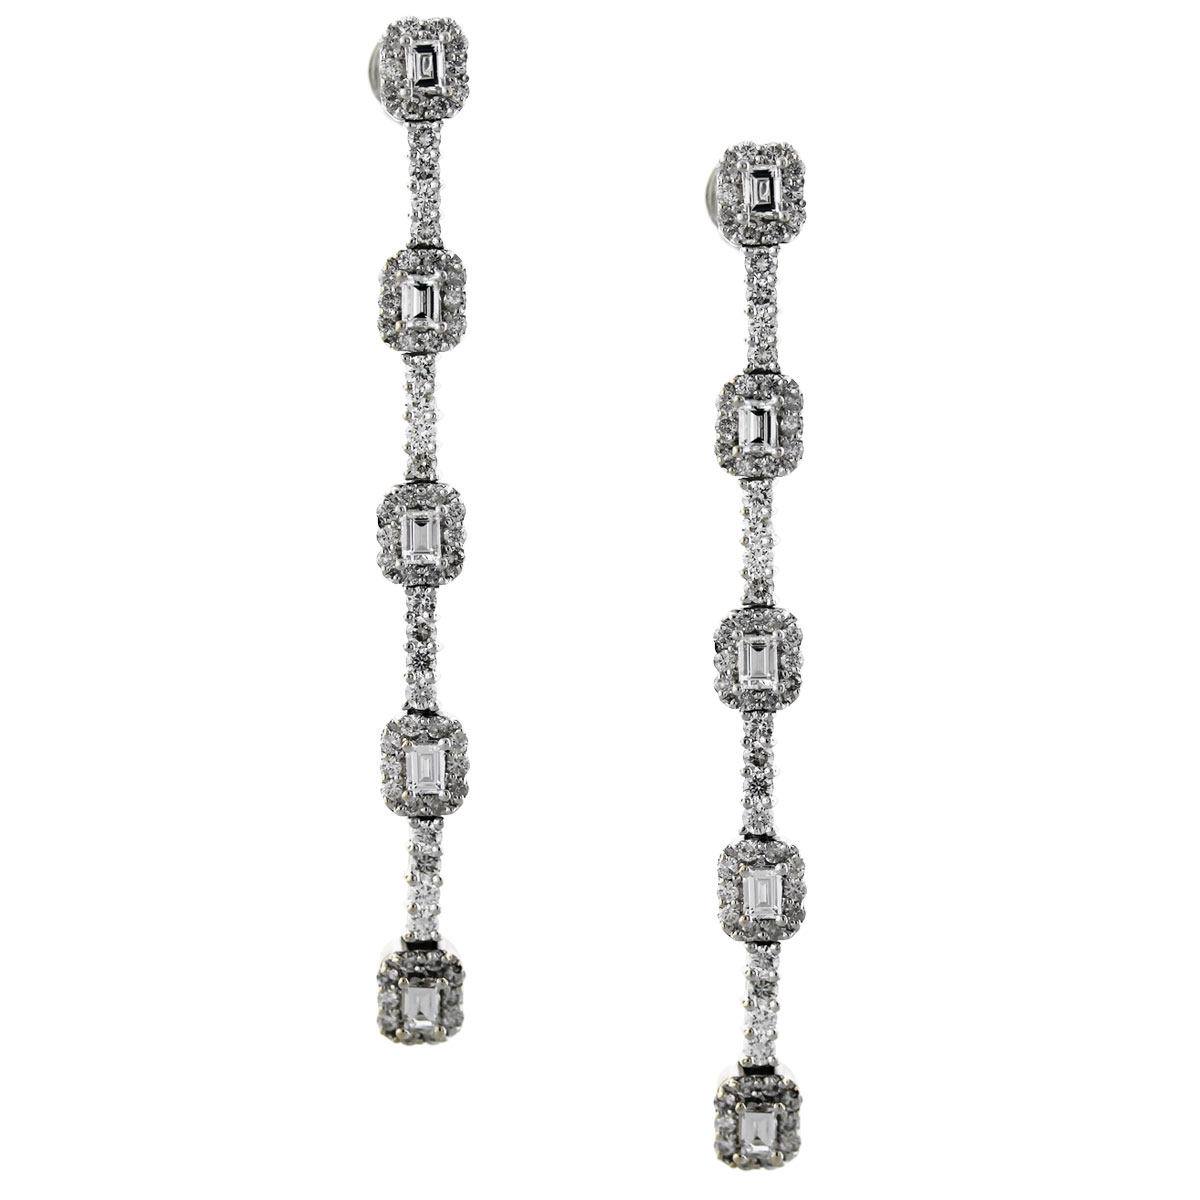 18k White Gold Emerald Cut Round Brilliant 2.65ctw Diamond Dangle Earrings